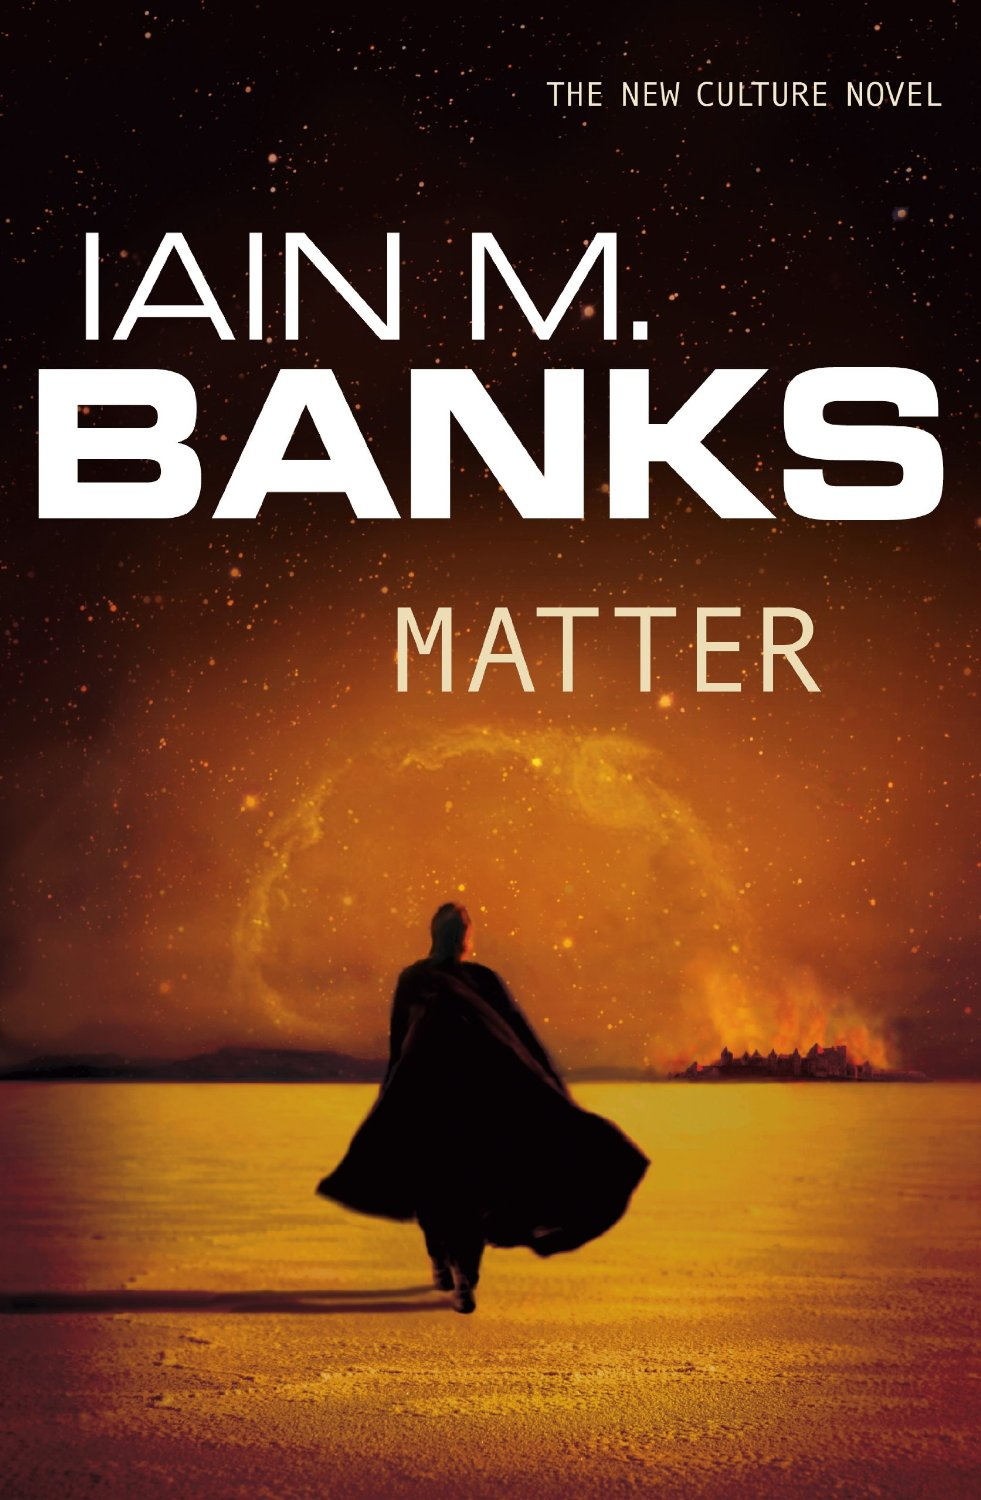 https://i2.wp.com/infinispace.net/wp-content/uploads/2015/02/matter_by_iain_m_banks.jpg